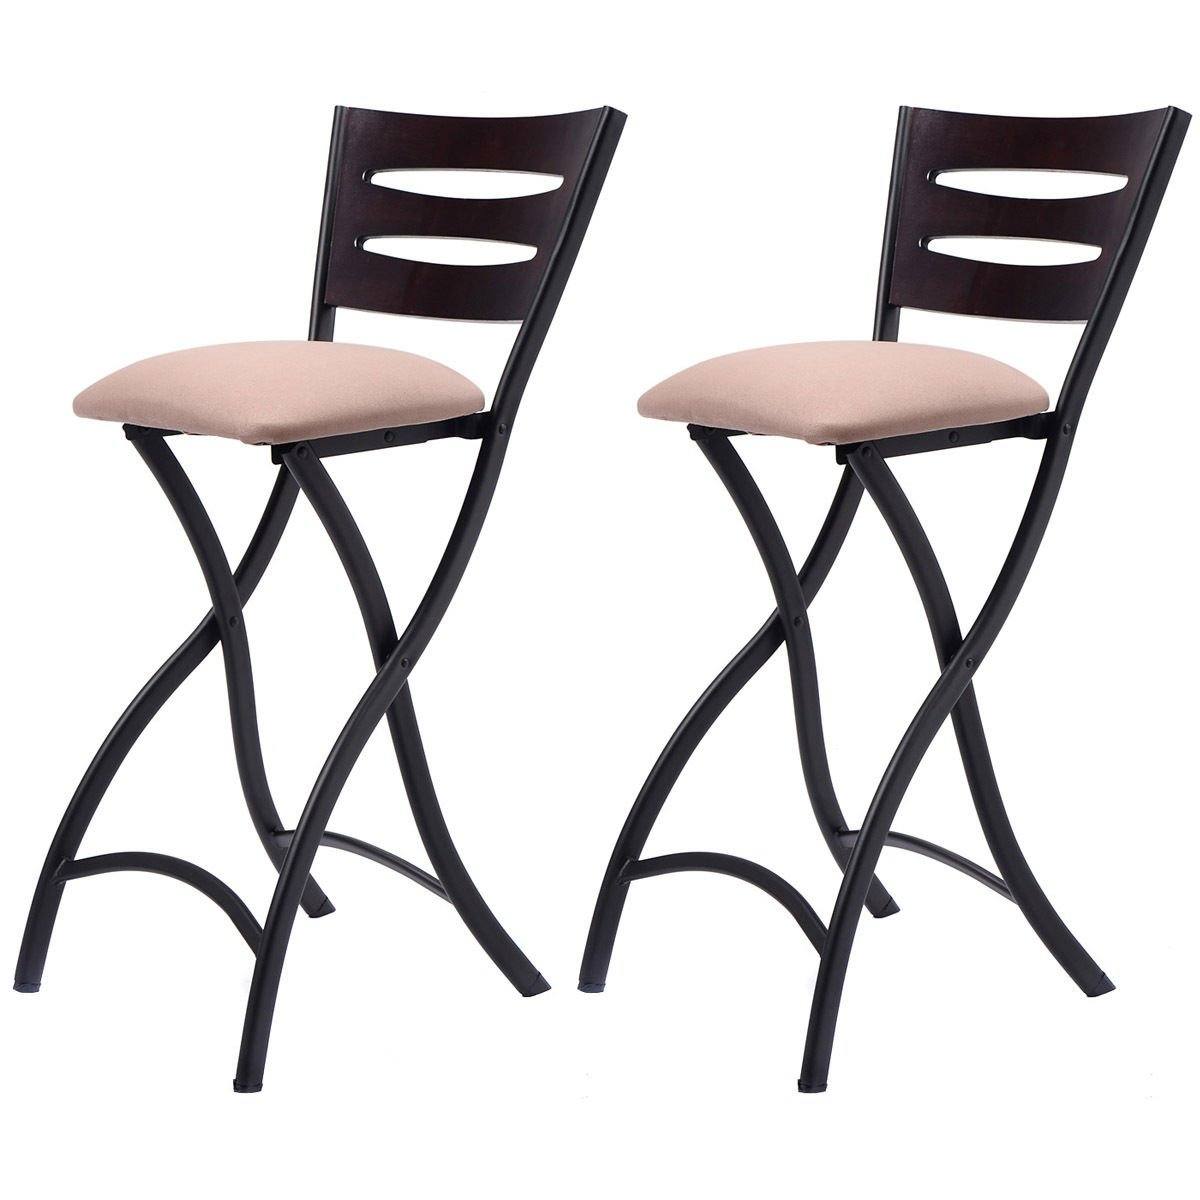 Amazon.com Costway Set of 2 Folding Bar Stools Counter Height Bistro Dining Kitchen Pub Chair Kitchen u0026 Dining  sc 1 st  Amazon.com & Amazon.com: Costway Set of 2 Folding Bar Stools Counter Height ... islam-shia.org